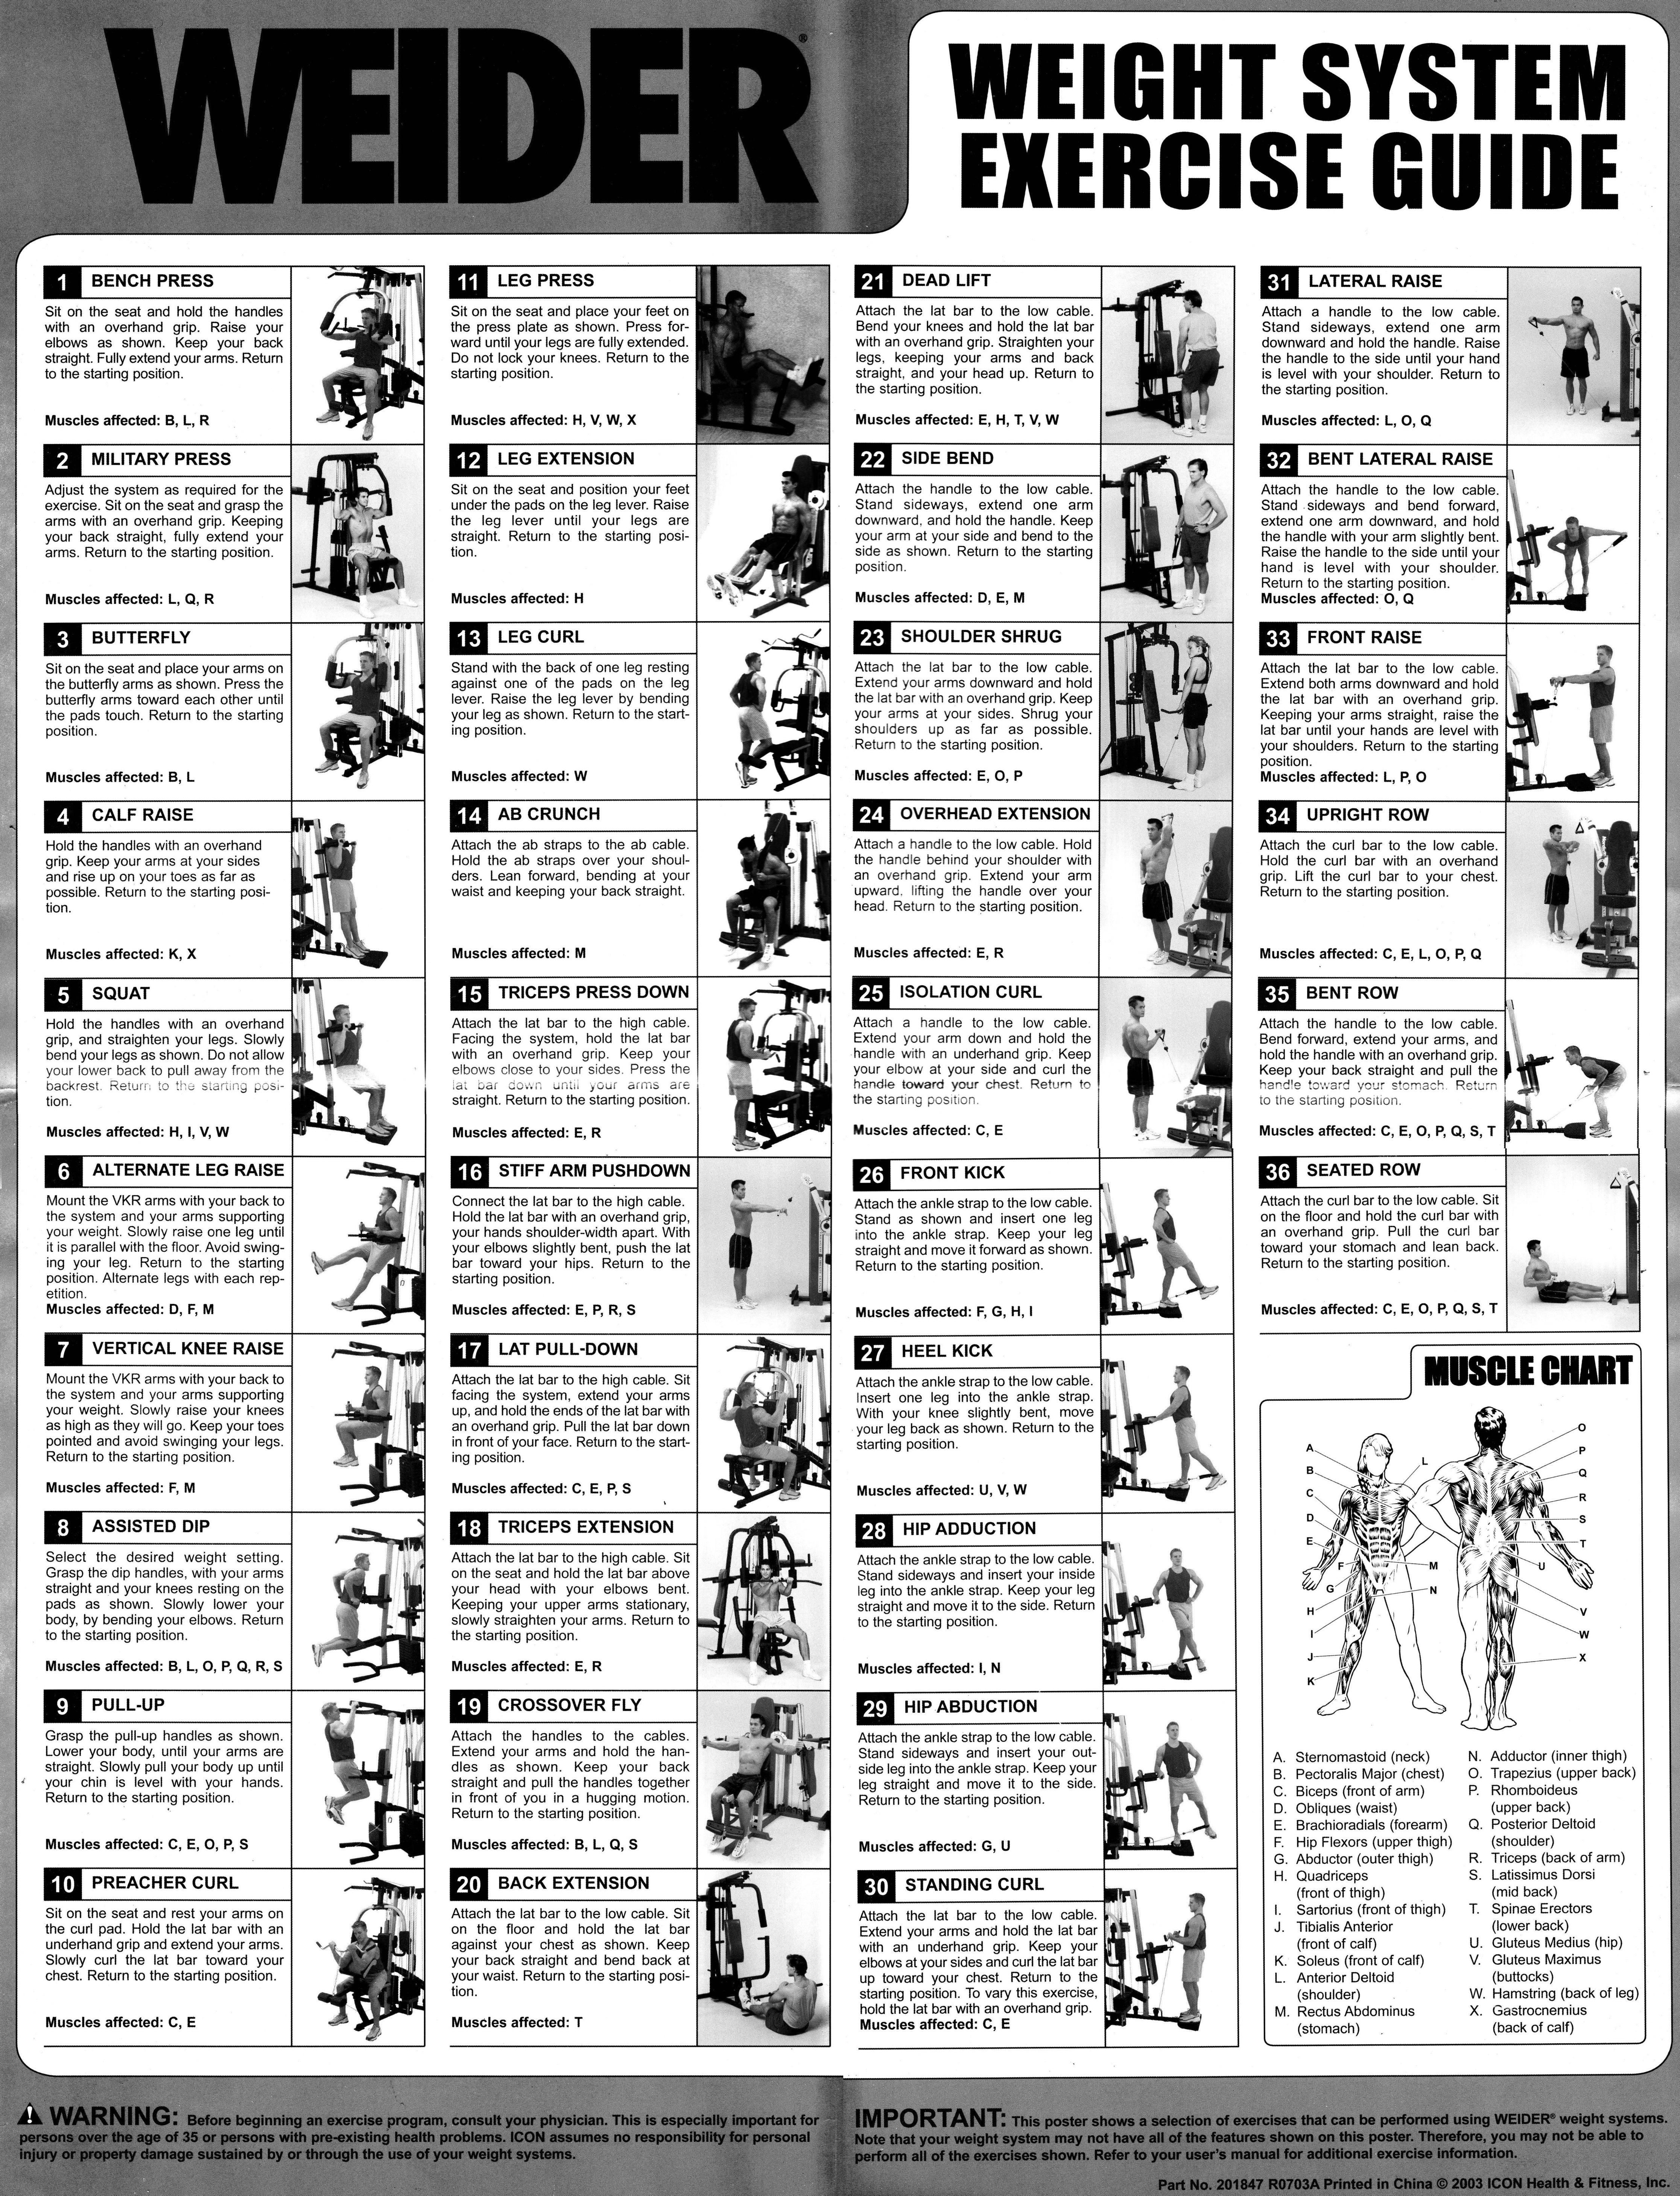 Weider Home Gym Exercise Chart Pdf : weider, exercise, chart, Weider, Exercise, Chart, Imgur, Workouts, Machines,, Workout, Chart,, Exercises